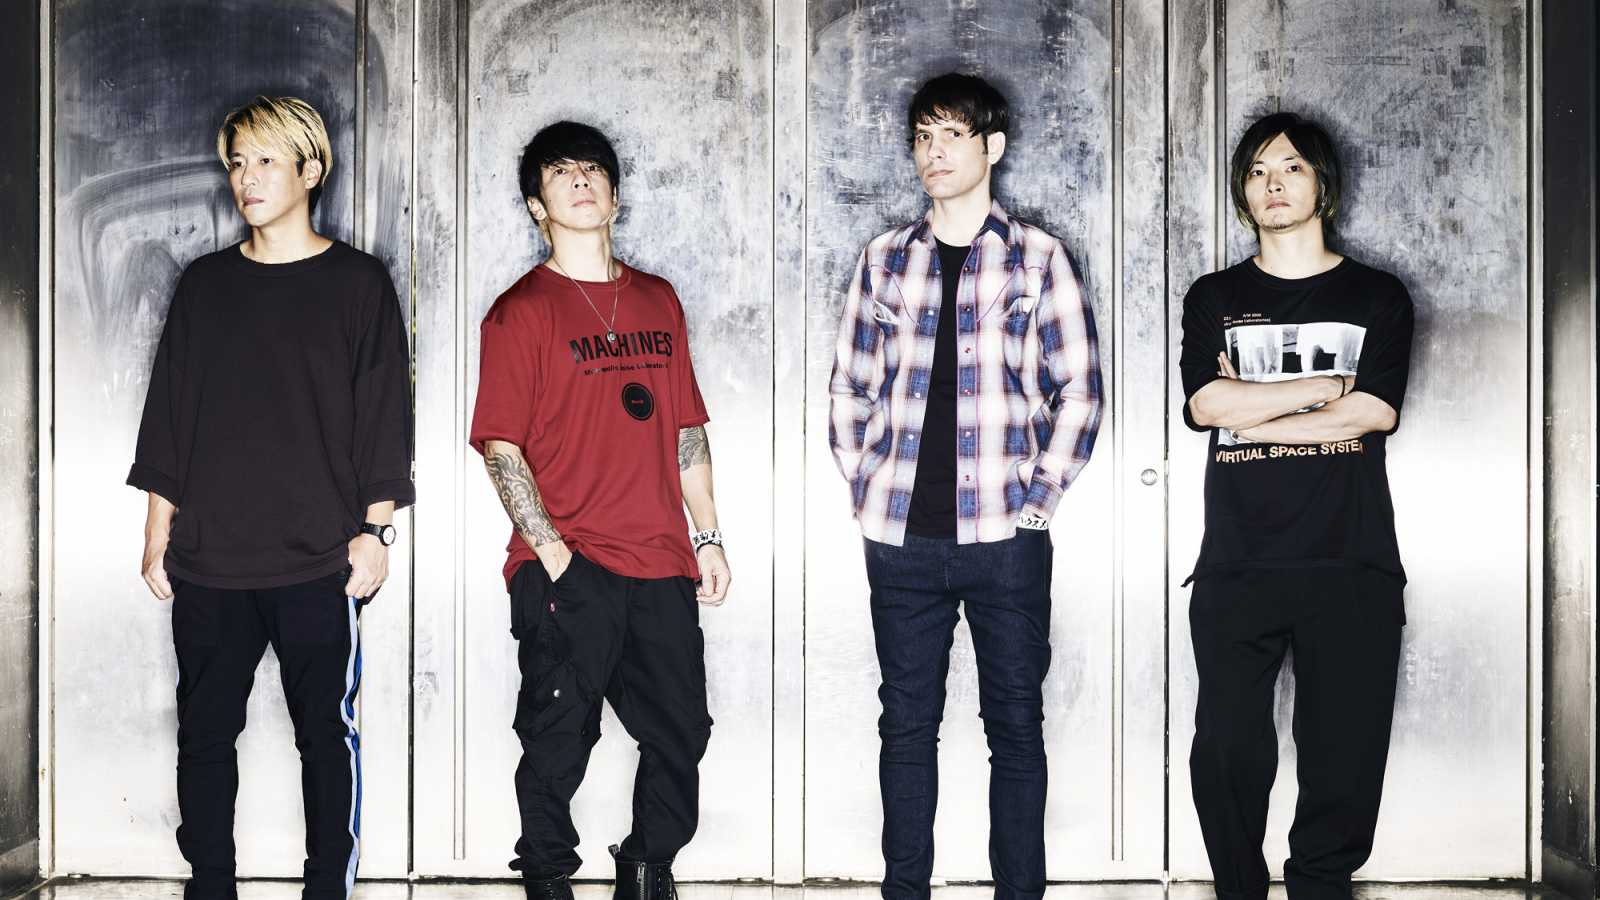 MONOEYES Announce First Live Streaming Concert © MONOEYES. All rights reserved.